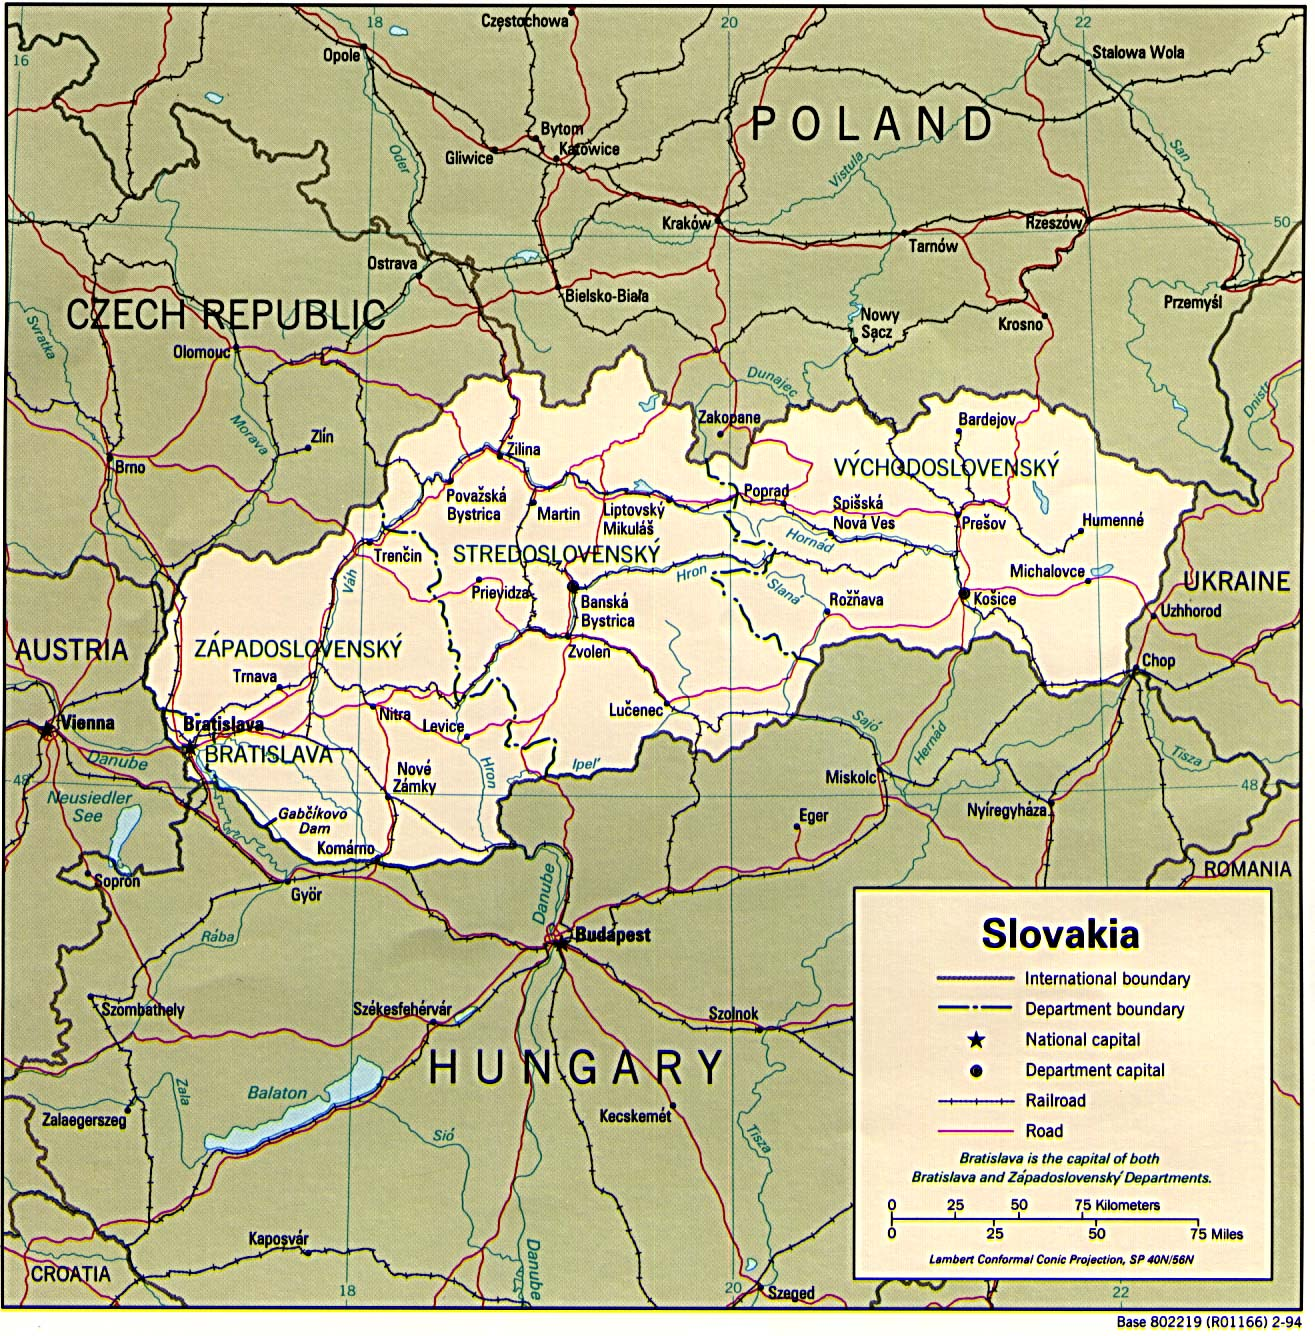 Slovakia Maps - Perry-Castañeda Map Collection - UT Library Online